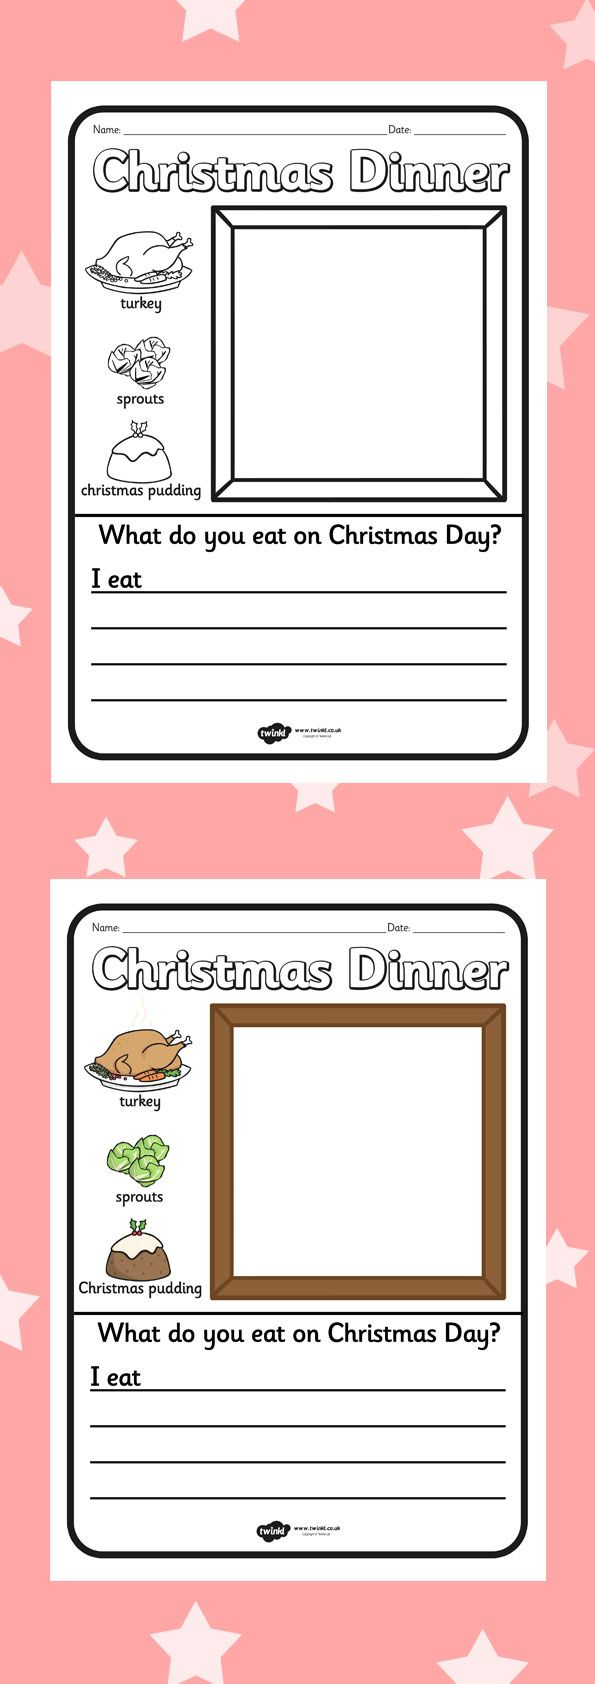 Printable Activities & Education Resources for Children